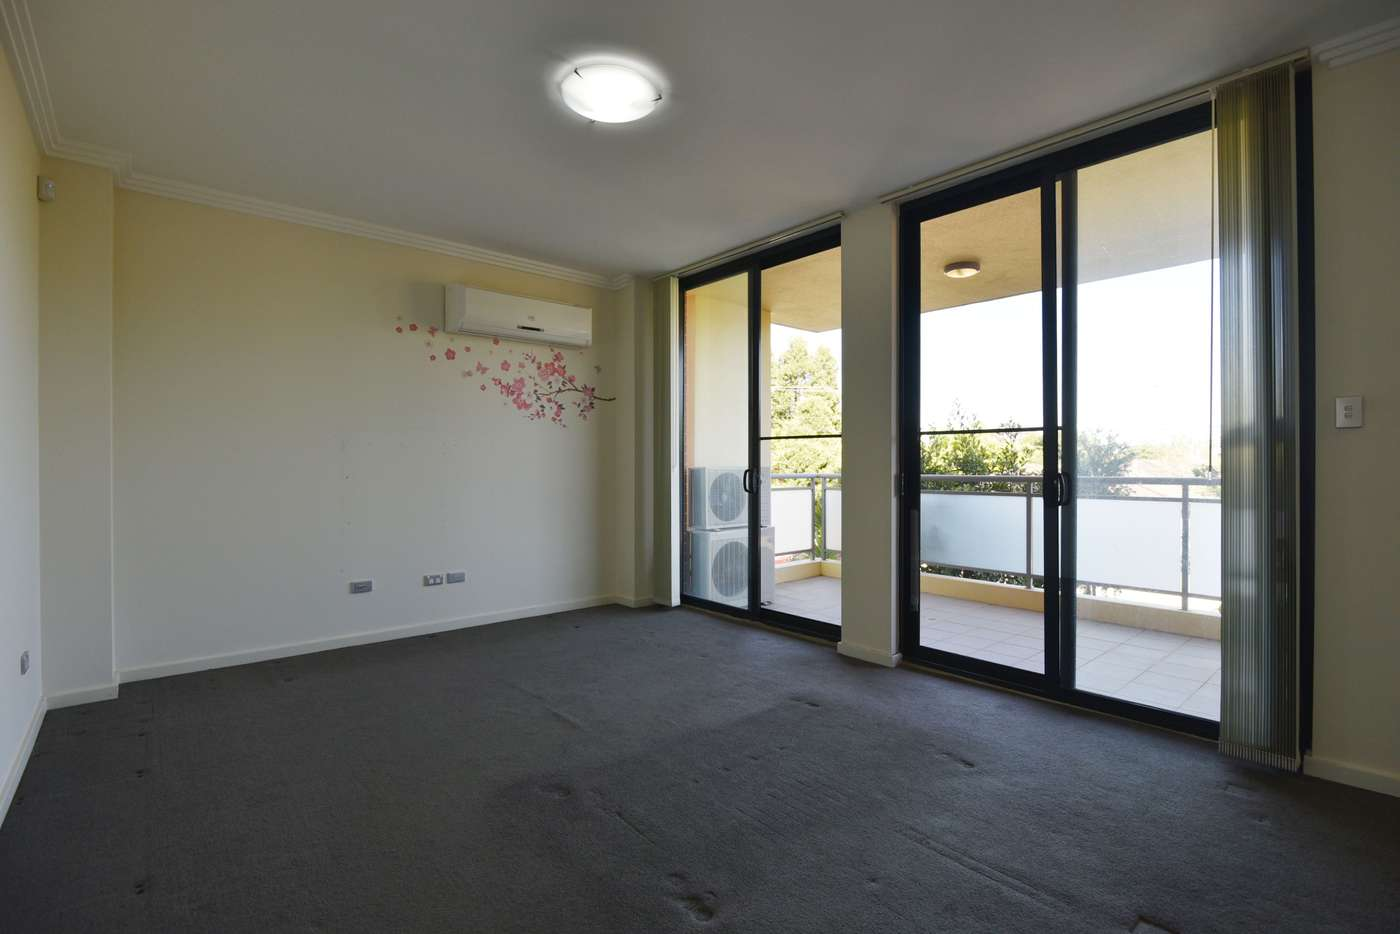 Main view of Homely apartment listing, 44/15 Young Road, Carlingford NSW 2118